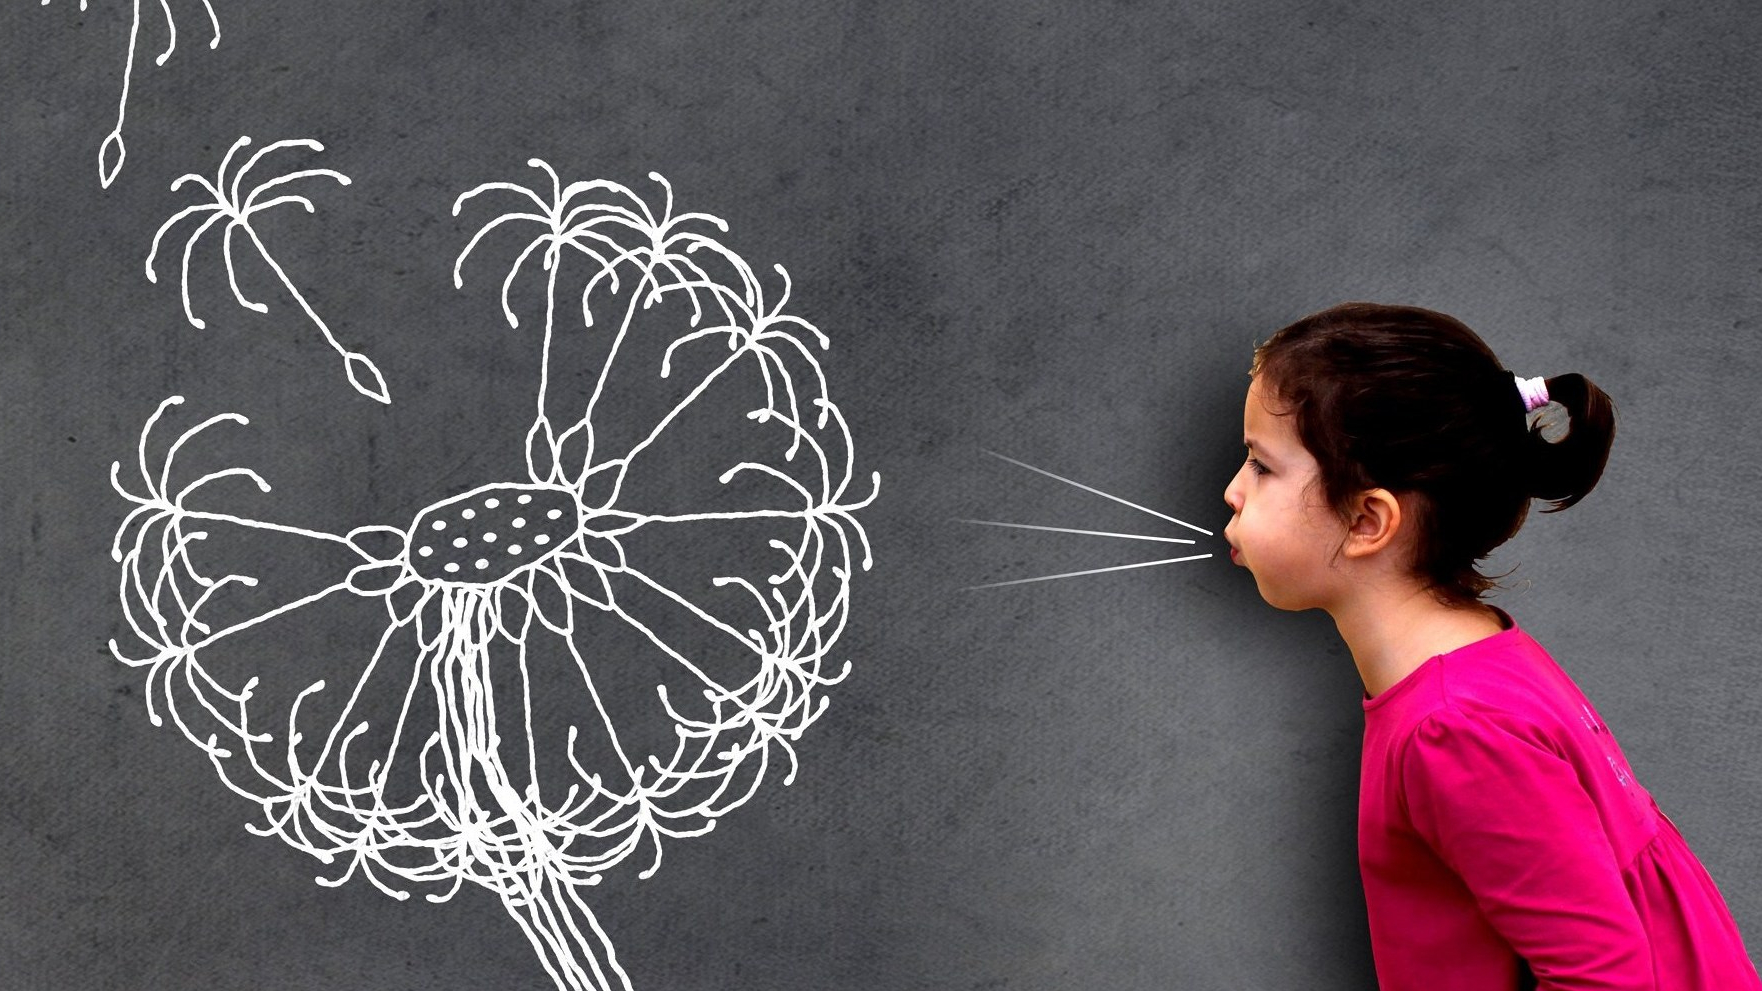 Photo: Jack Moreh - Little cute girl blowing dandelion seeds on chalkboard